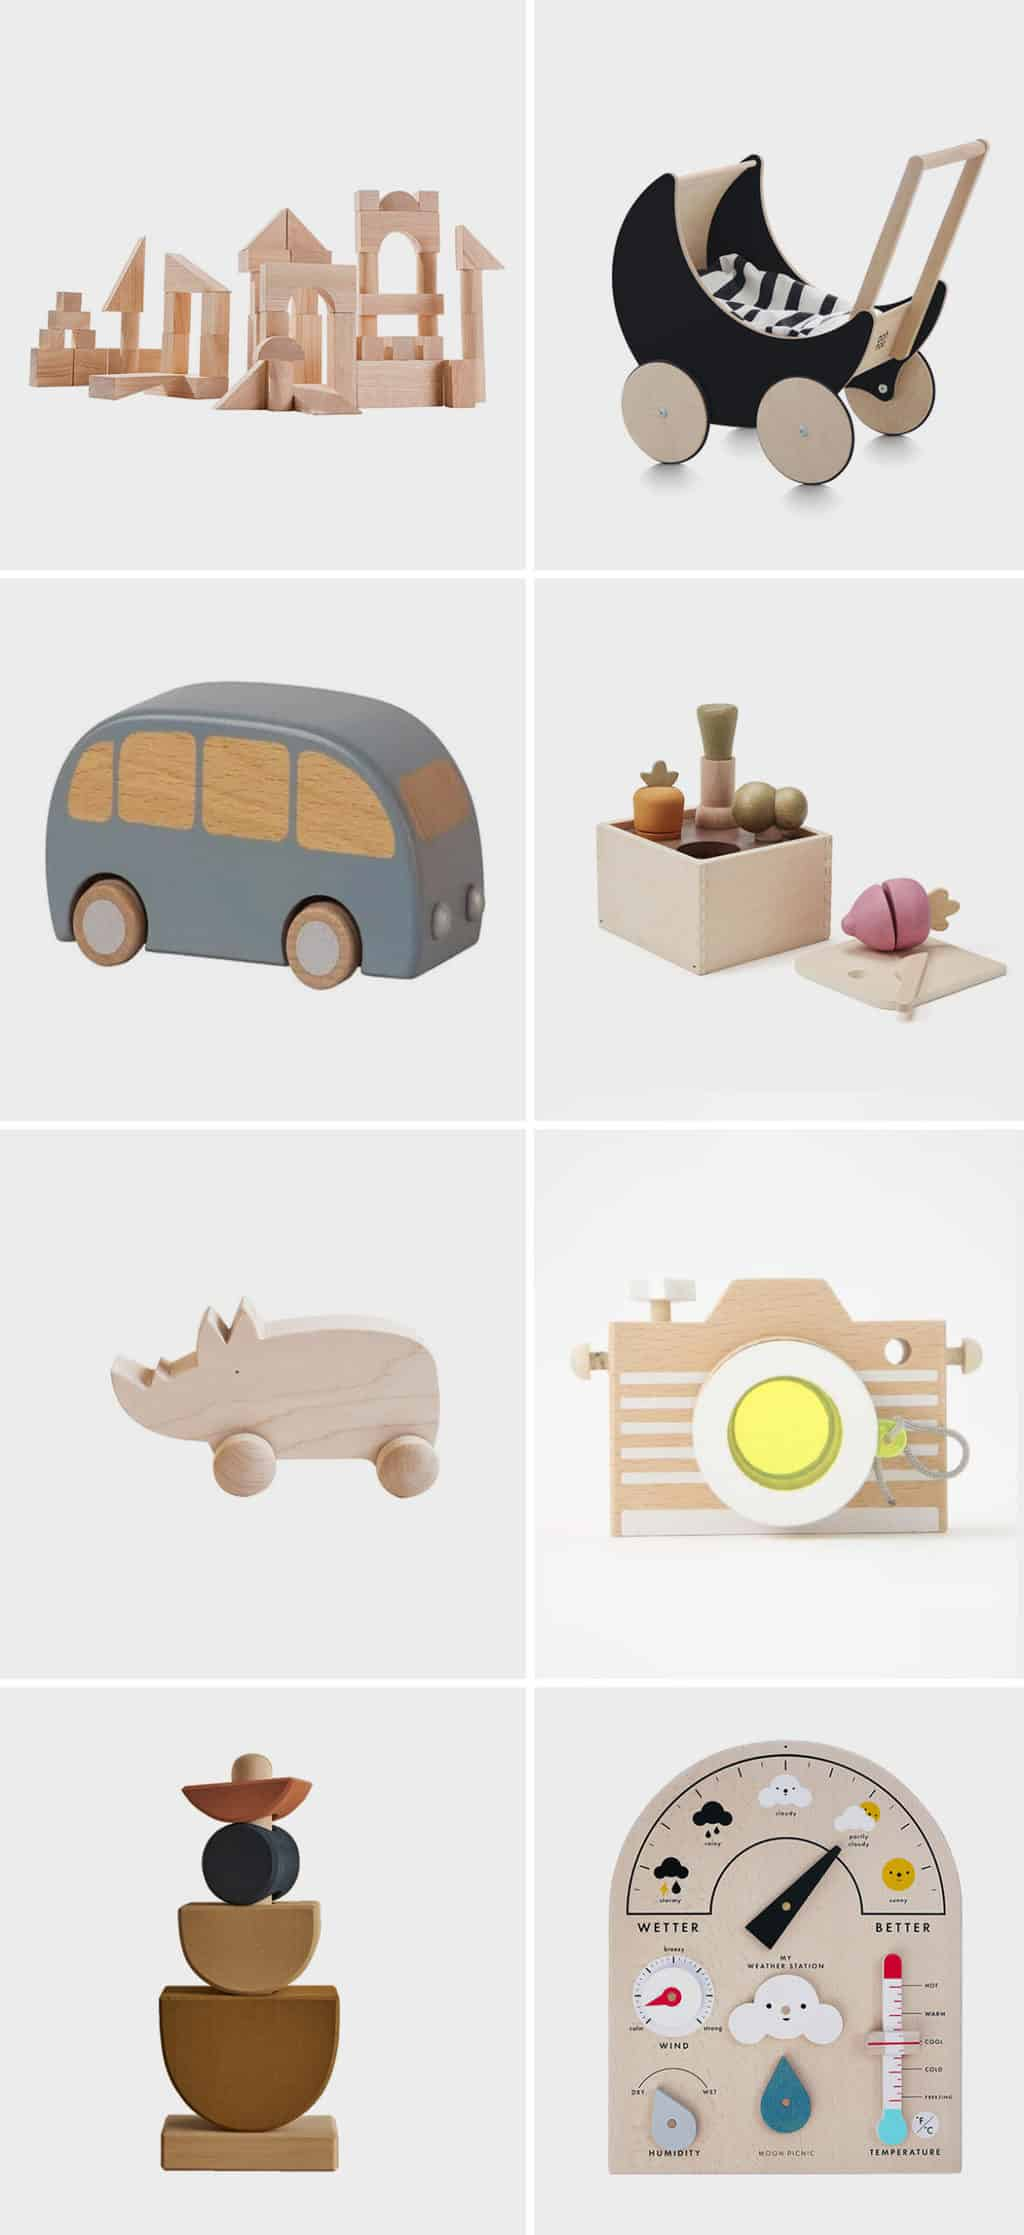 Image of various wooden toys for toddlers, featuring wooden blocks, toy cars, a wooden camera, and more.